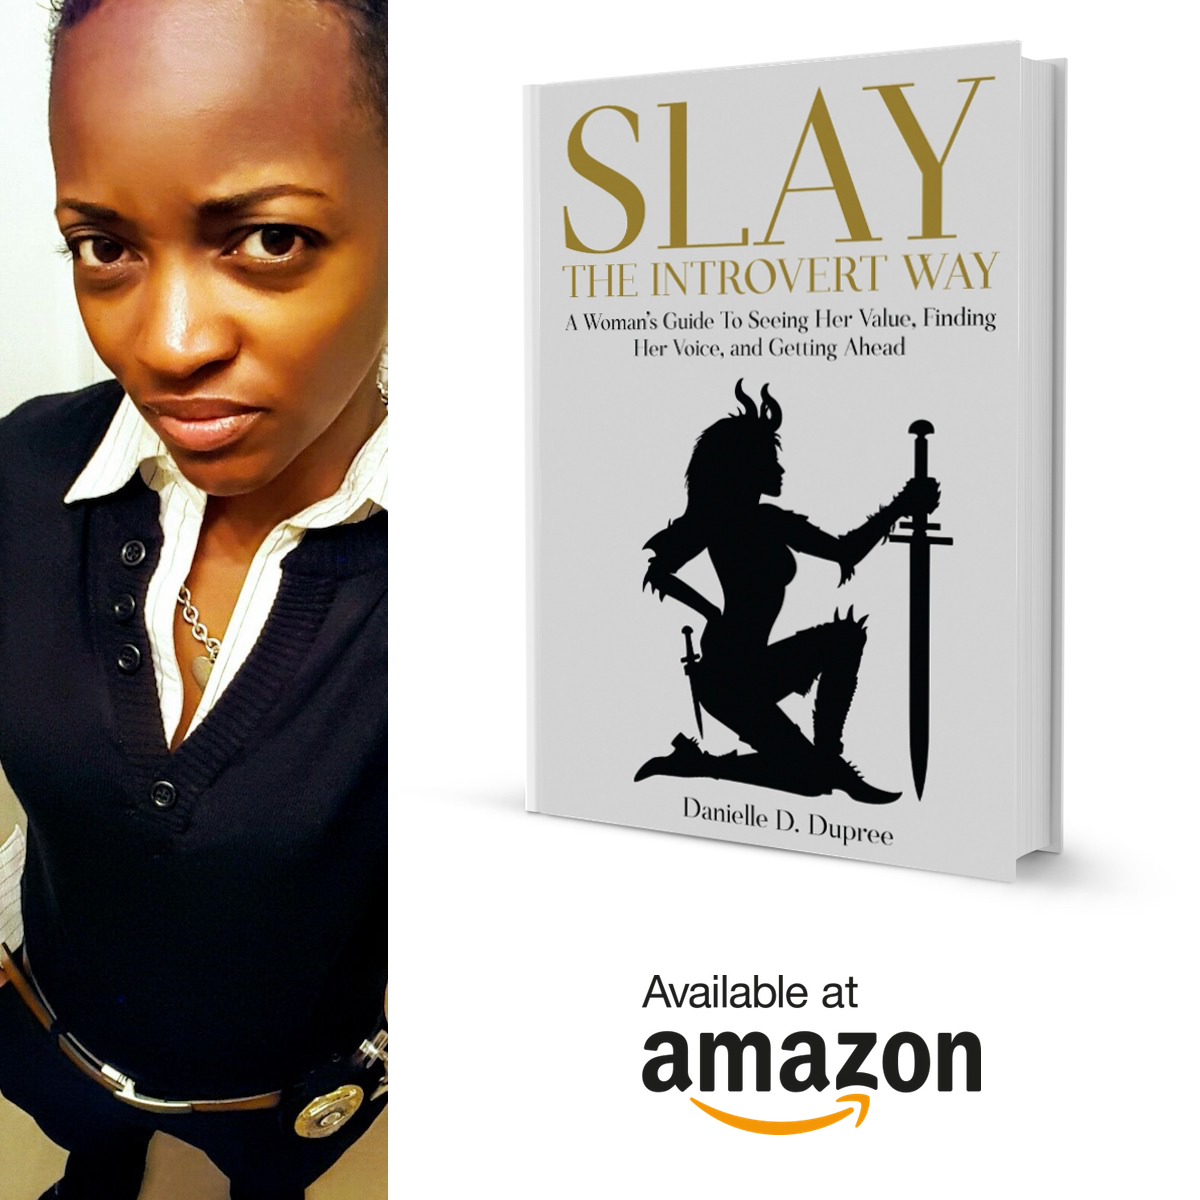 Click Image to Buy Slay in eBook or Paperback